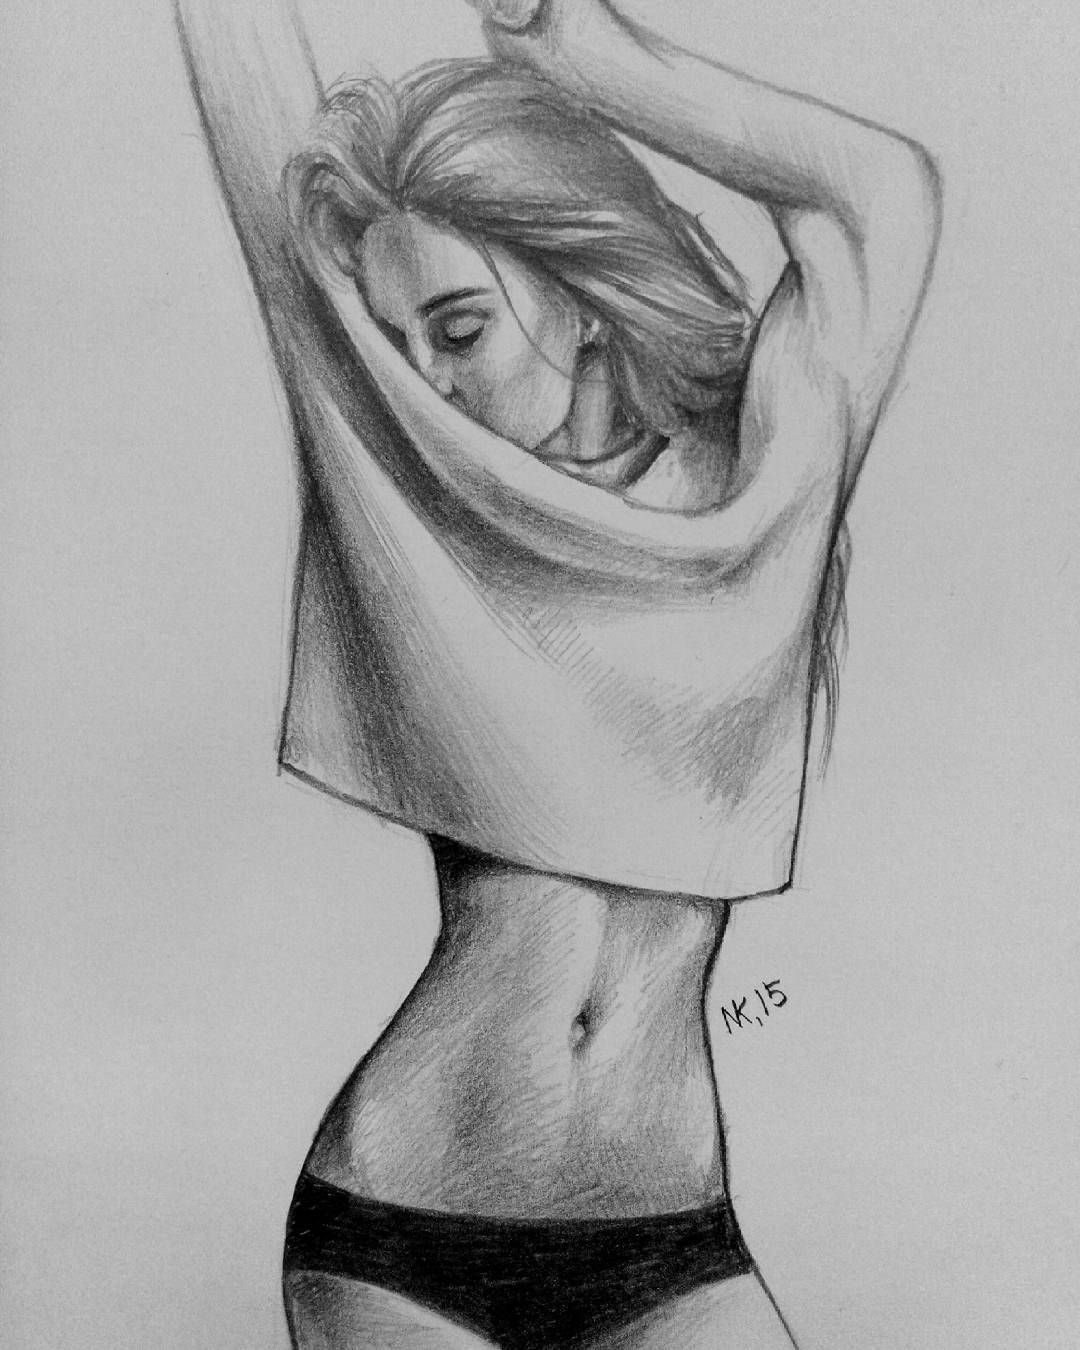 Pencil Art Pencil Sketch